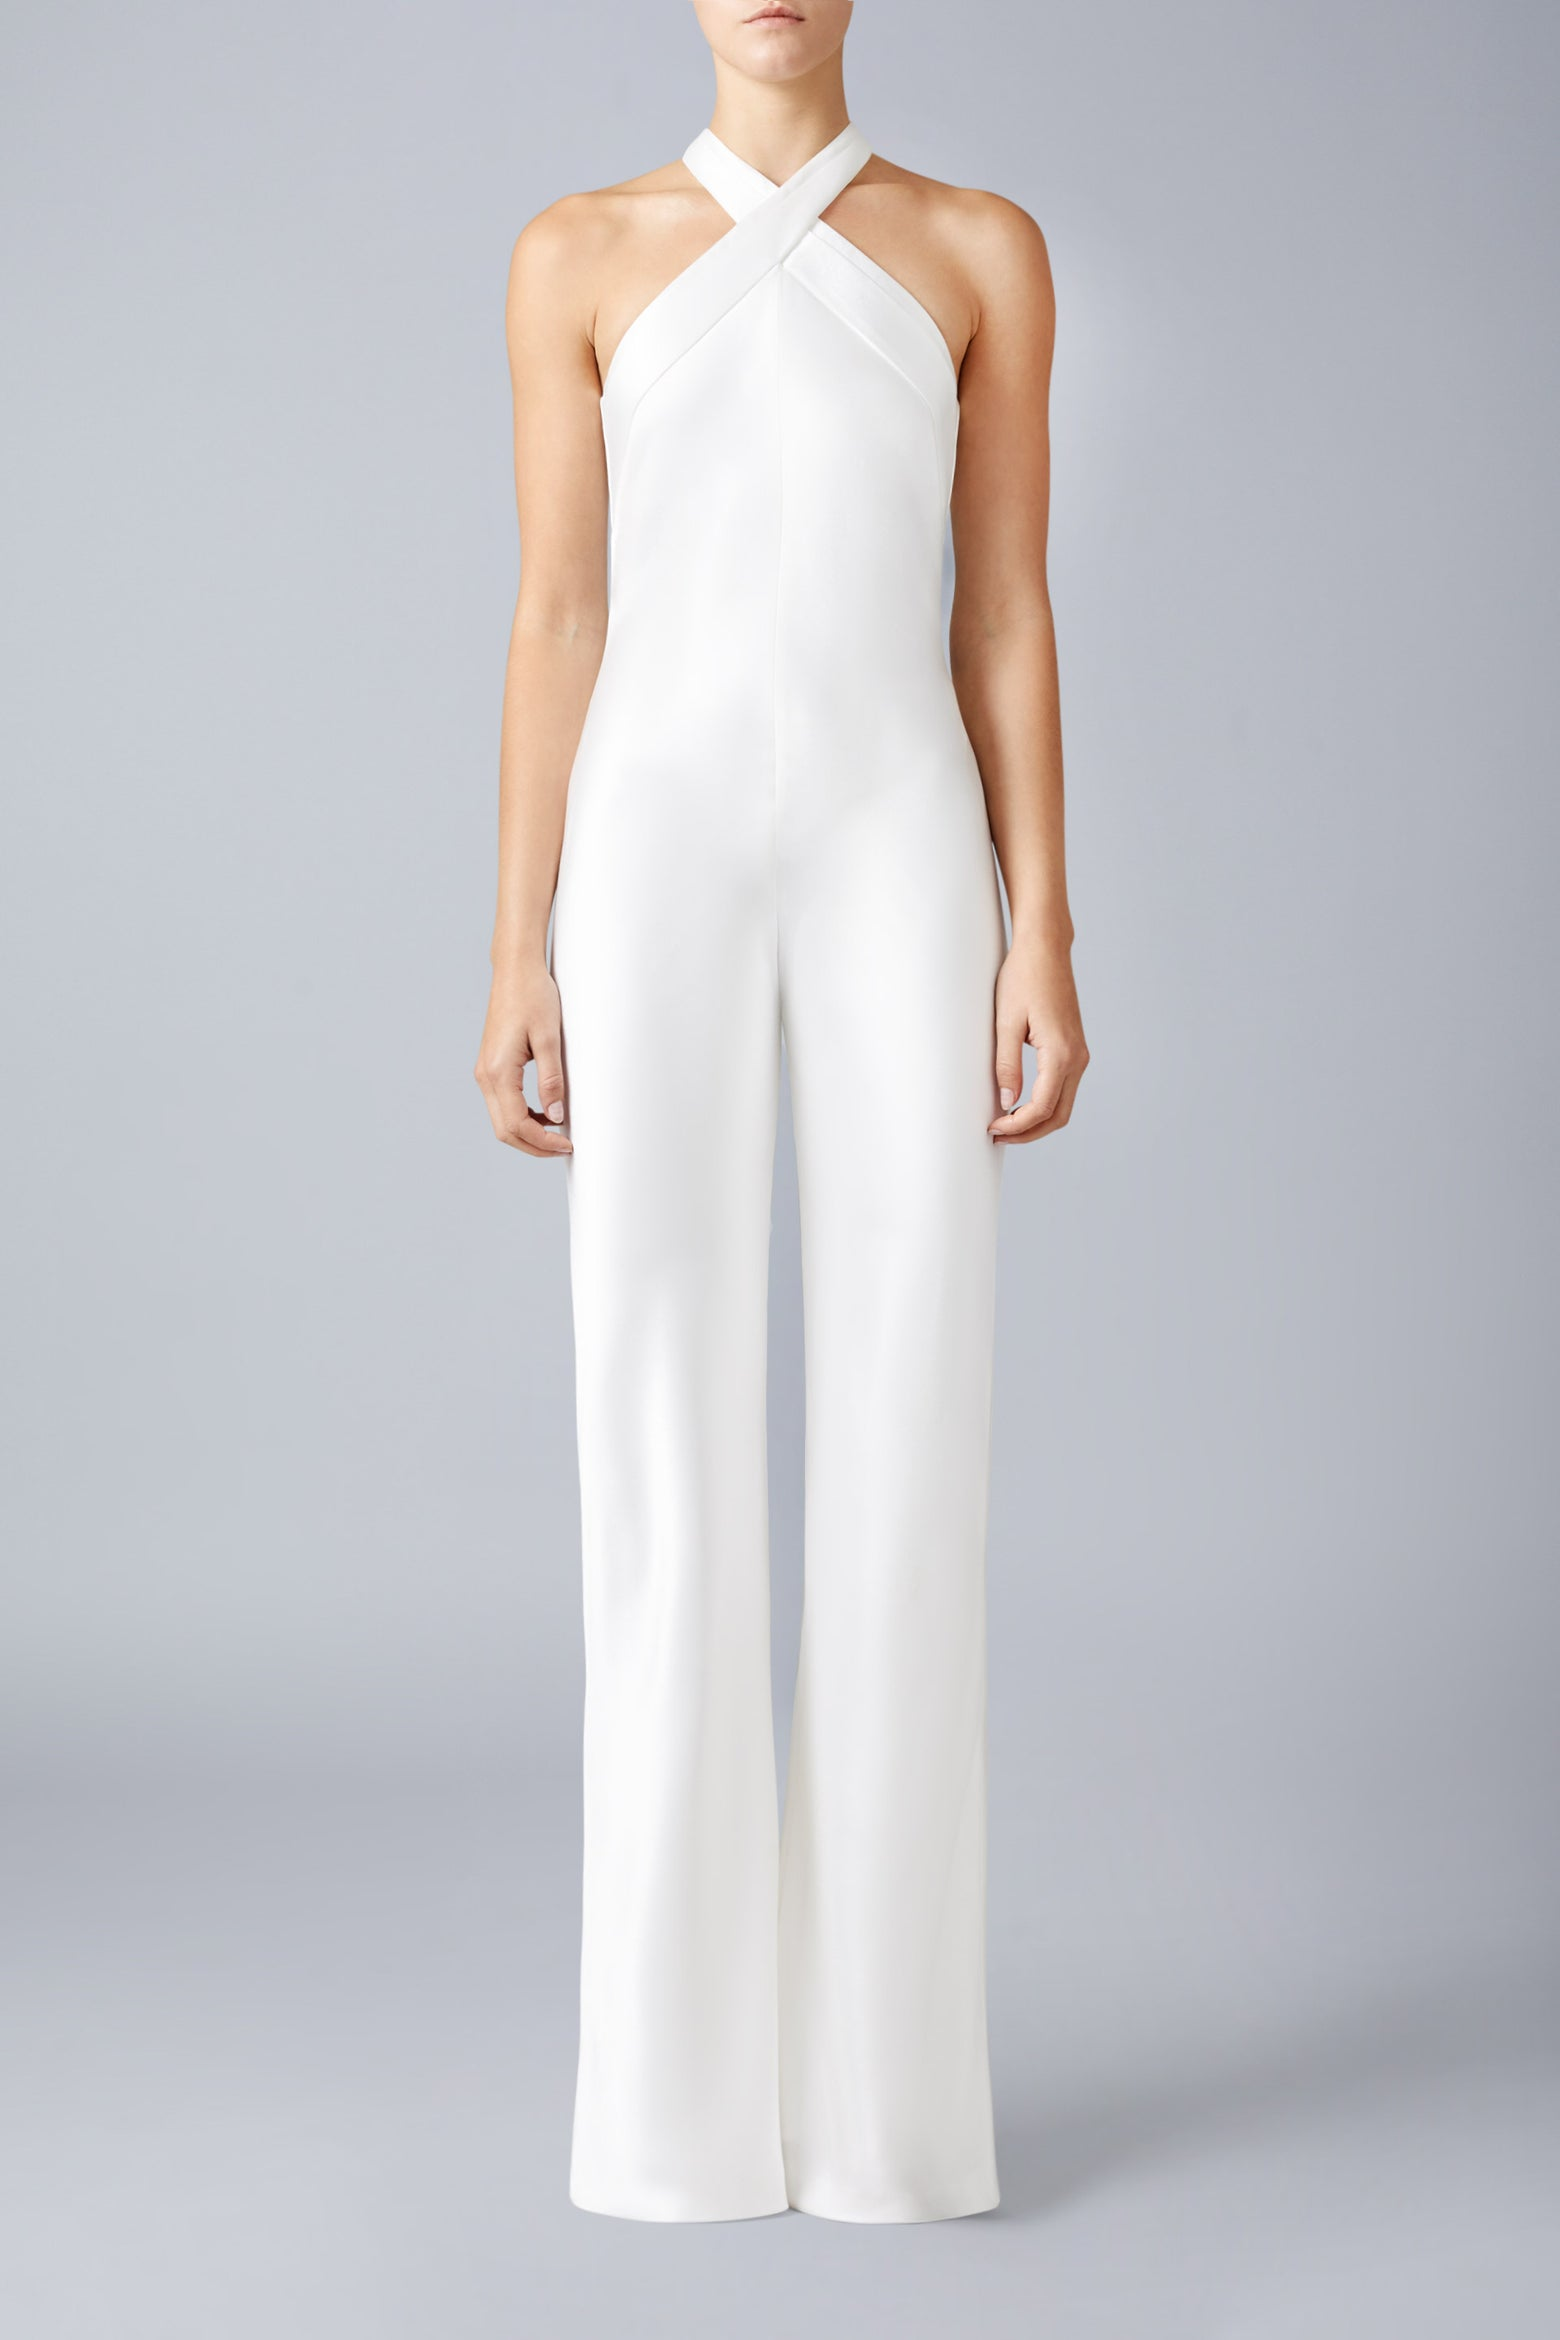 Monaco Bridal Jumpsuit